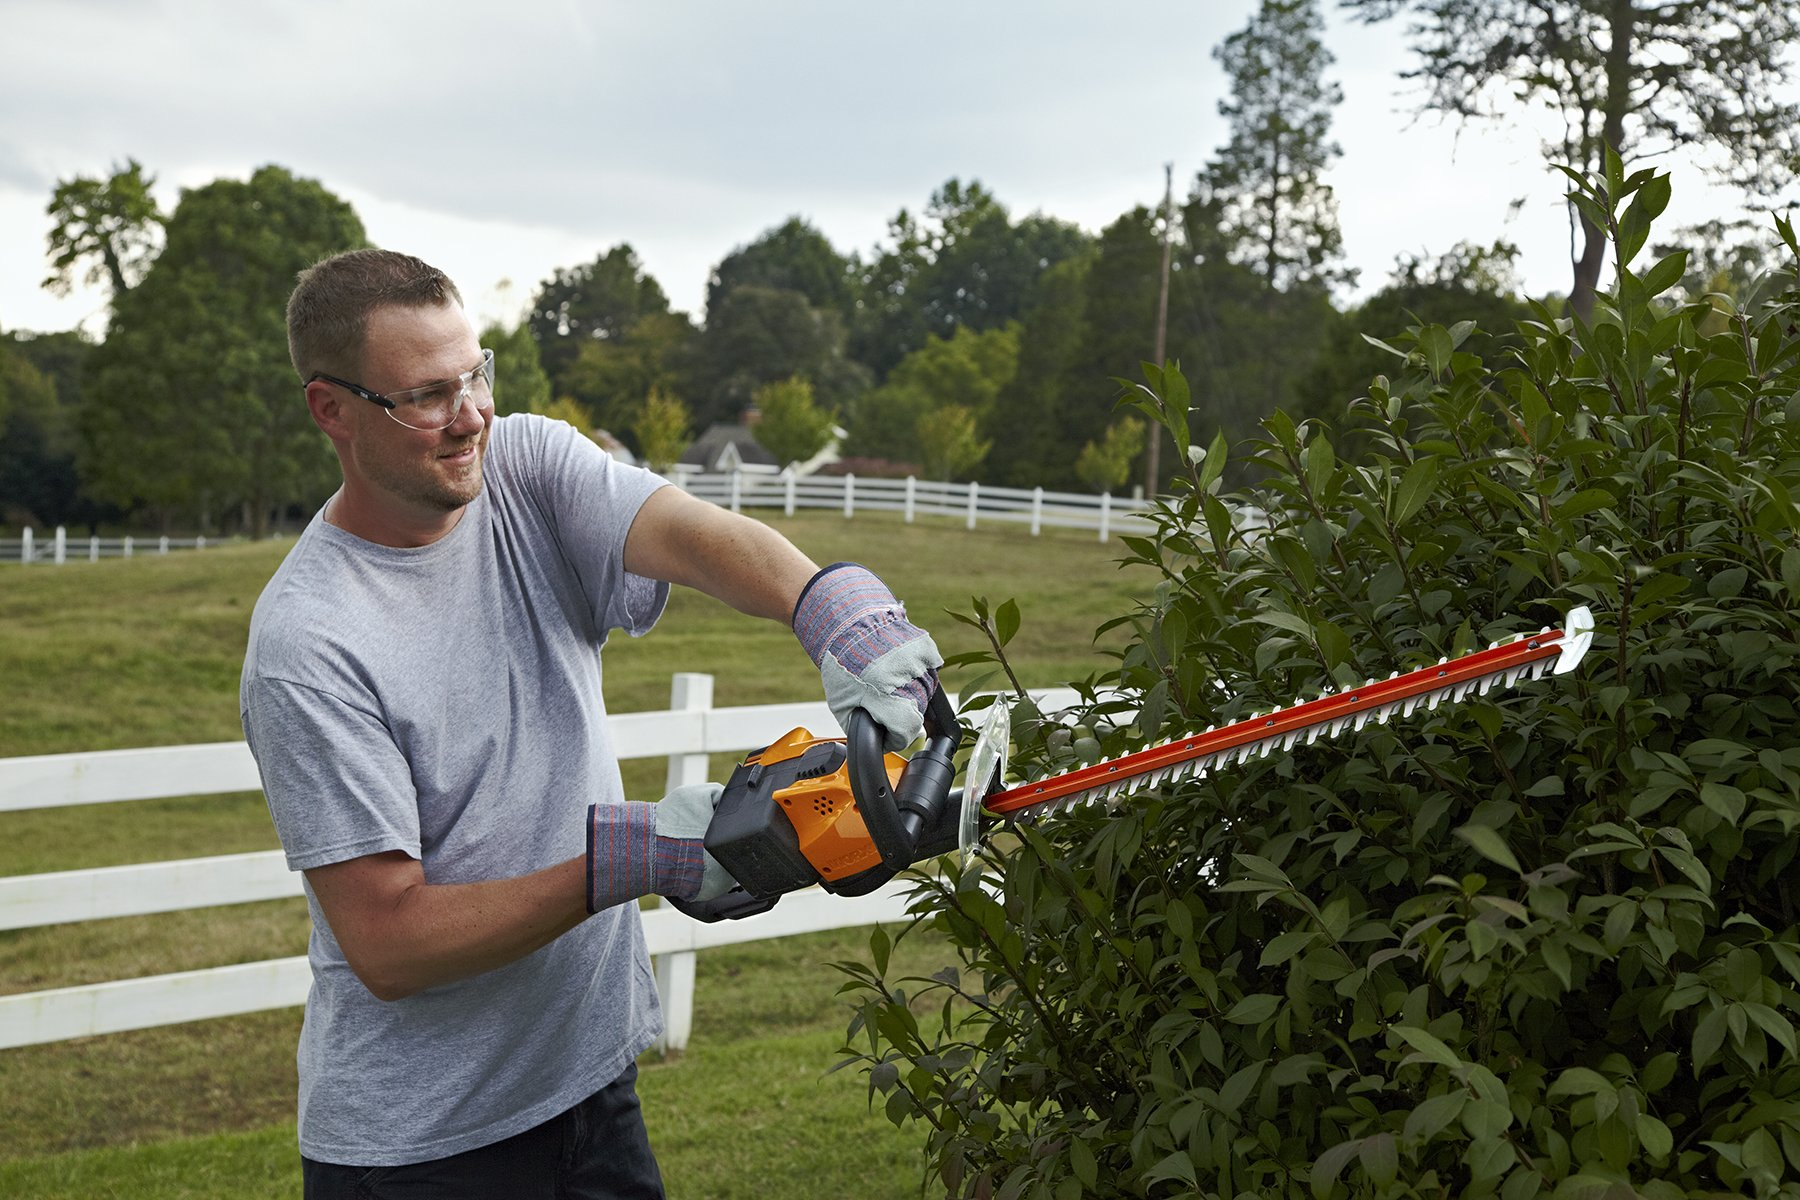 WORX WG291 56V Lithium-Ion Cordless Hedge Trimmer, 24-Inch, Battery and Charger Included by Worx (Image #3)